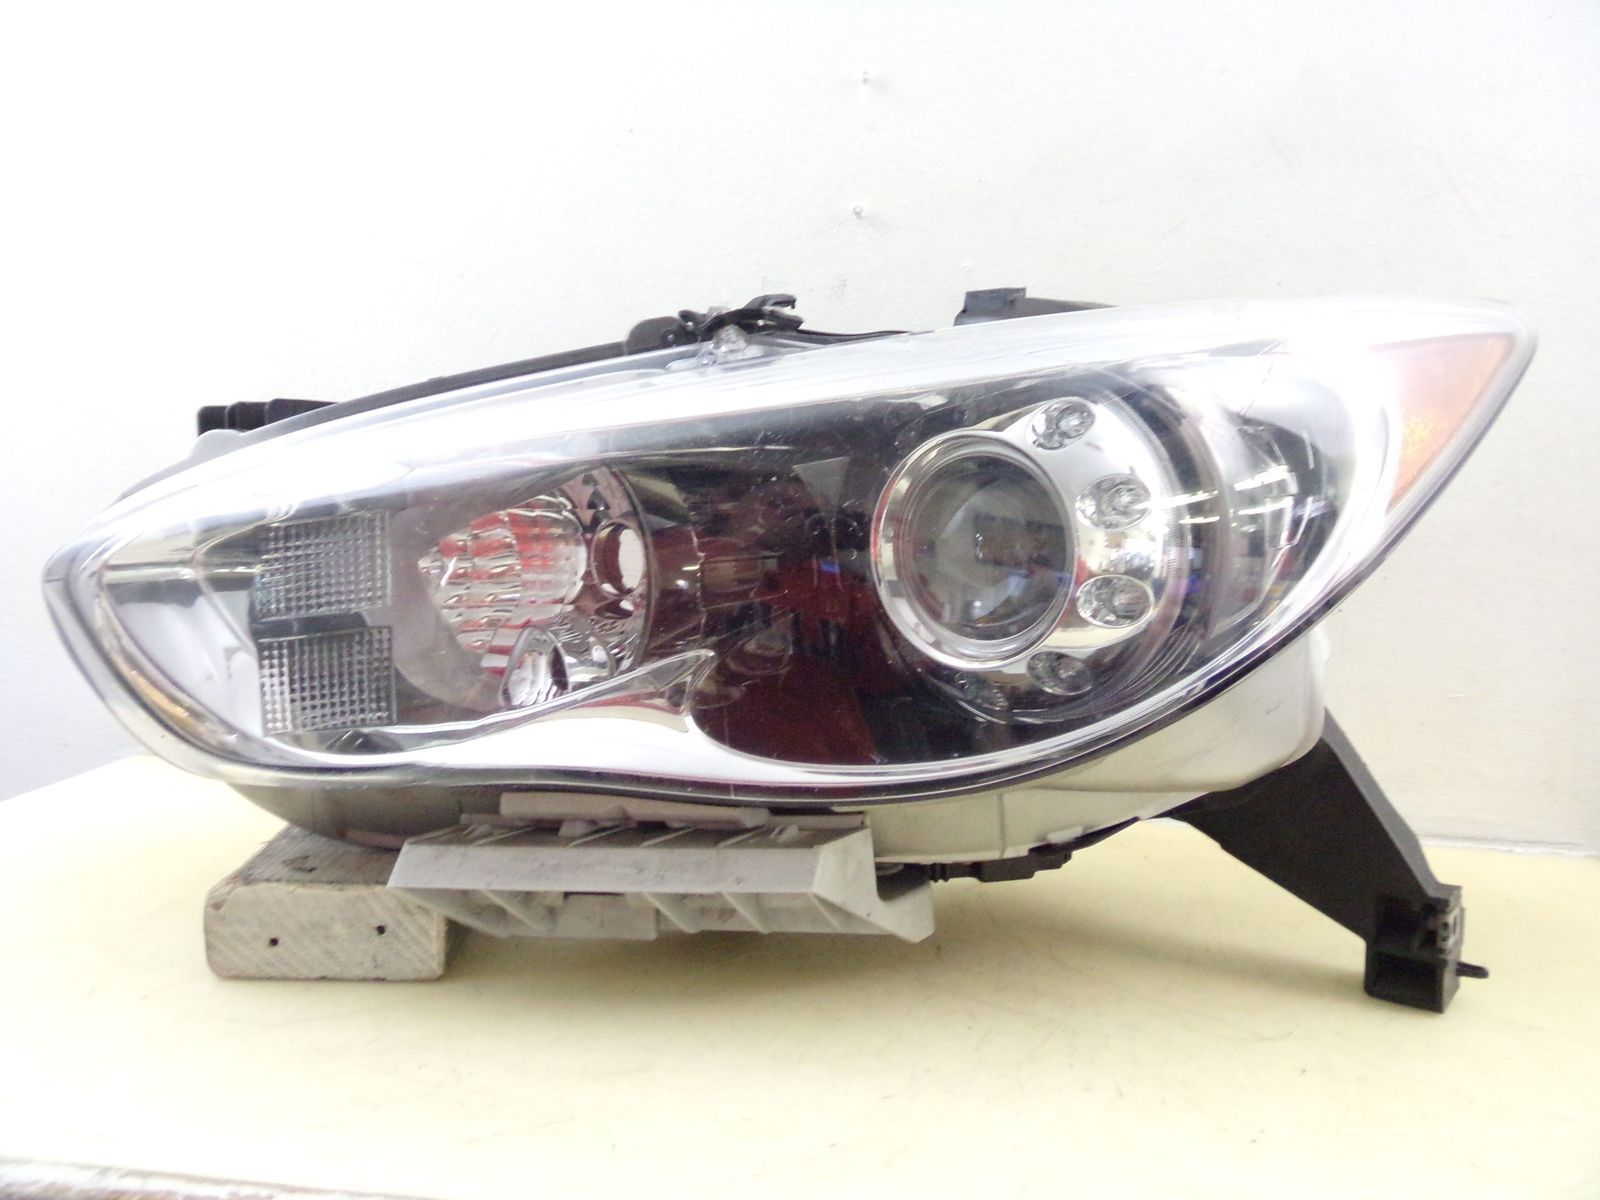 Primary image for 2013 INFINITI JX35 2014 2015 QX60 DRIVER LH XENON HID HEADLIGHT OEM 504